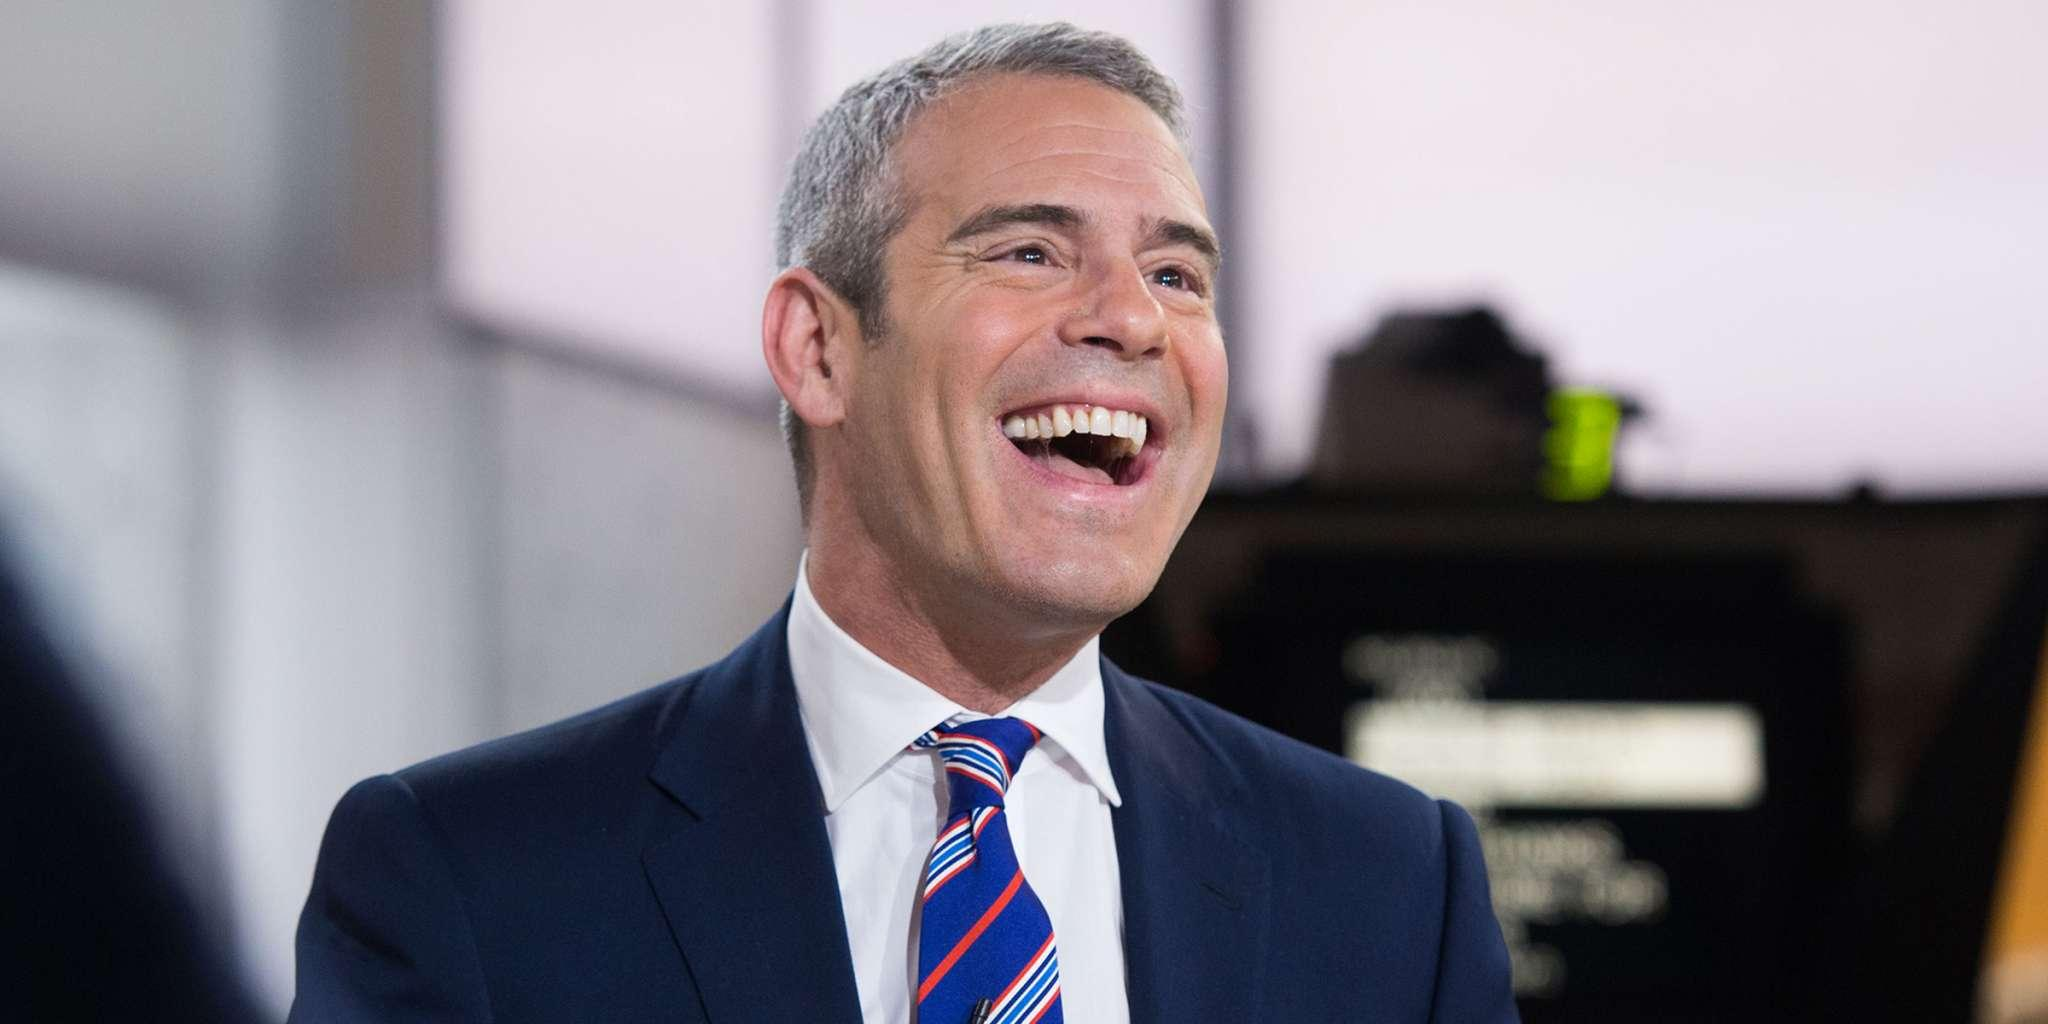 Andy Cohen Welcomes His Baby Boy Into The World - Check Out The First Photo With His Son, Benjamin!